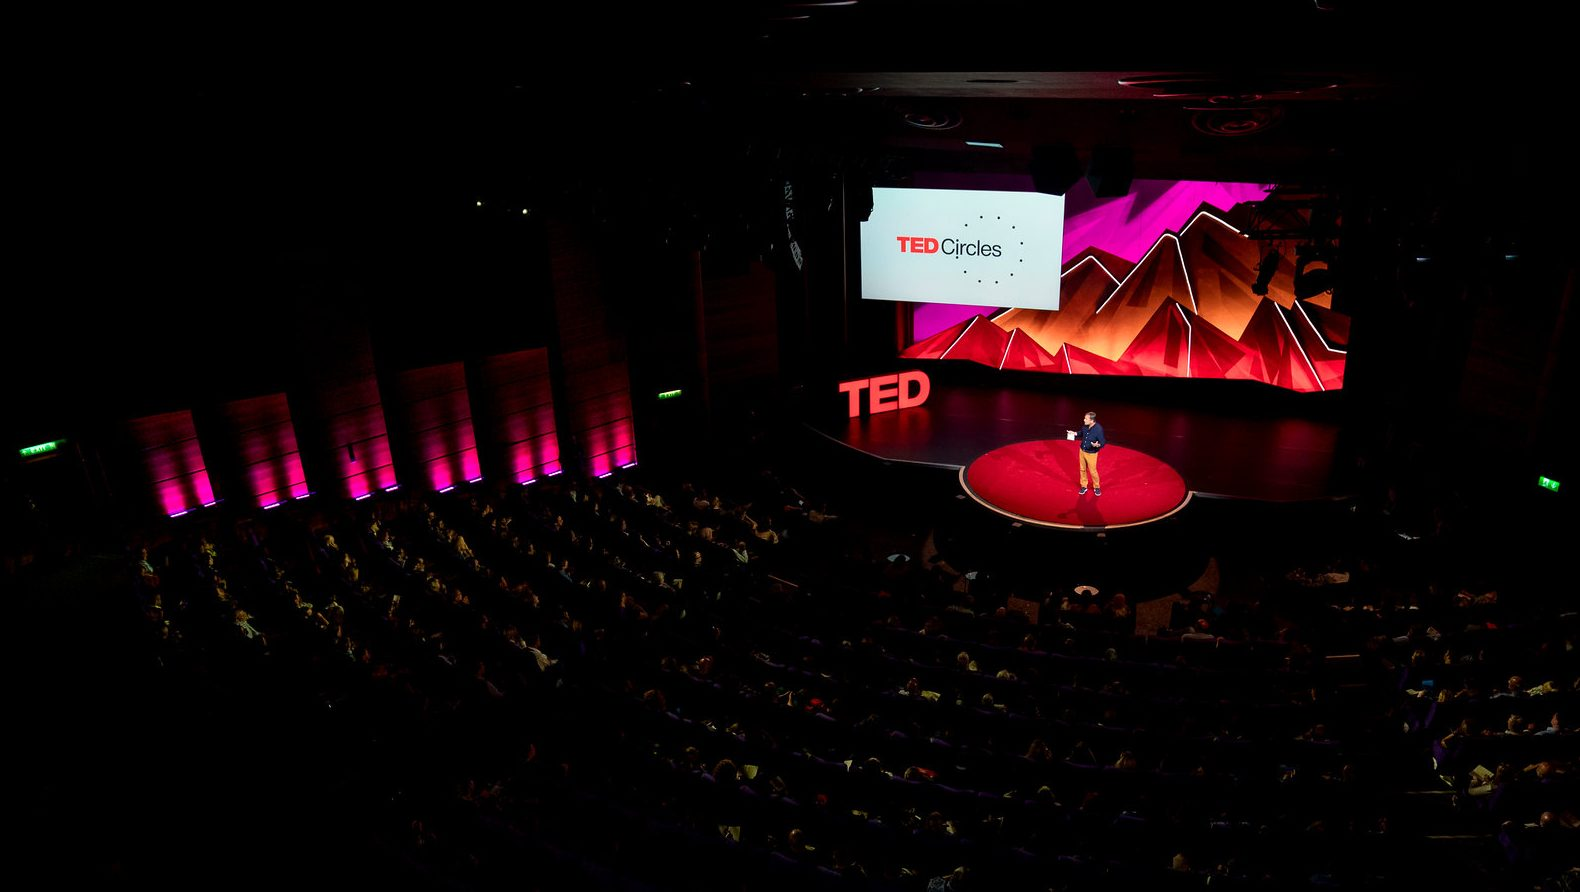 How to get over the fear of public speaking: Advice from TED